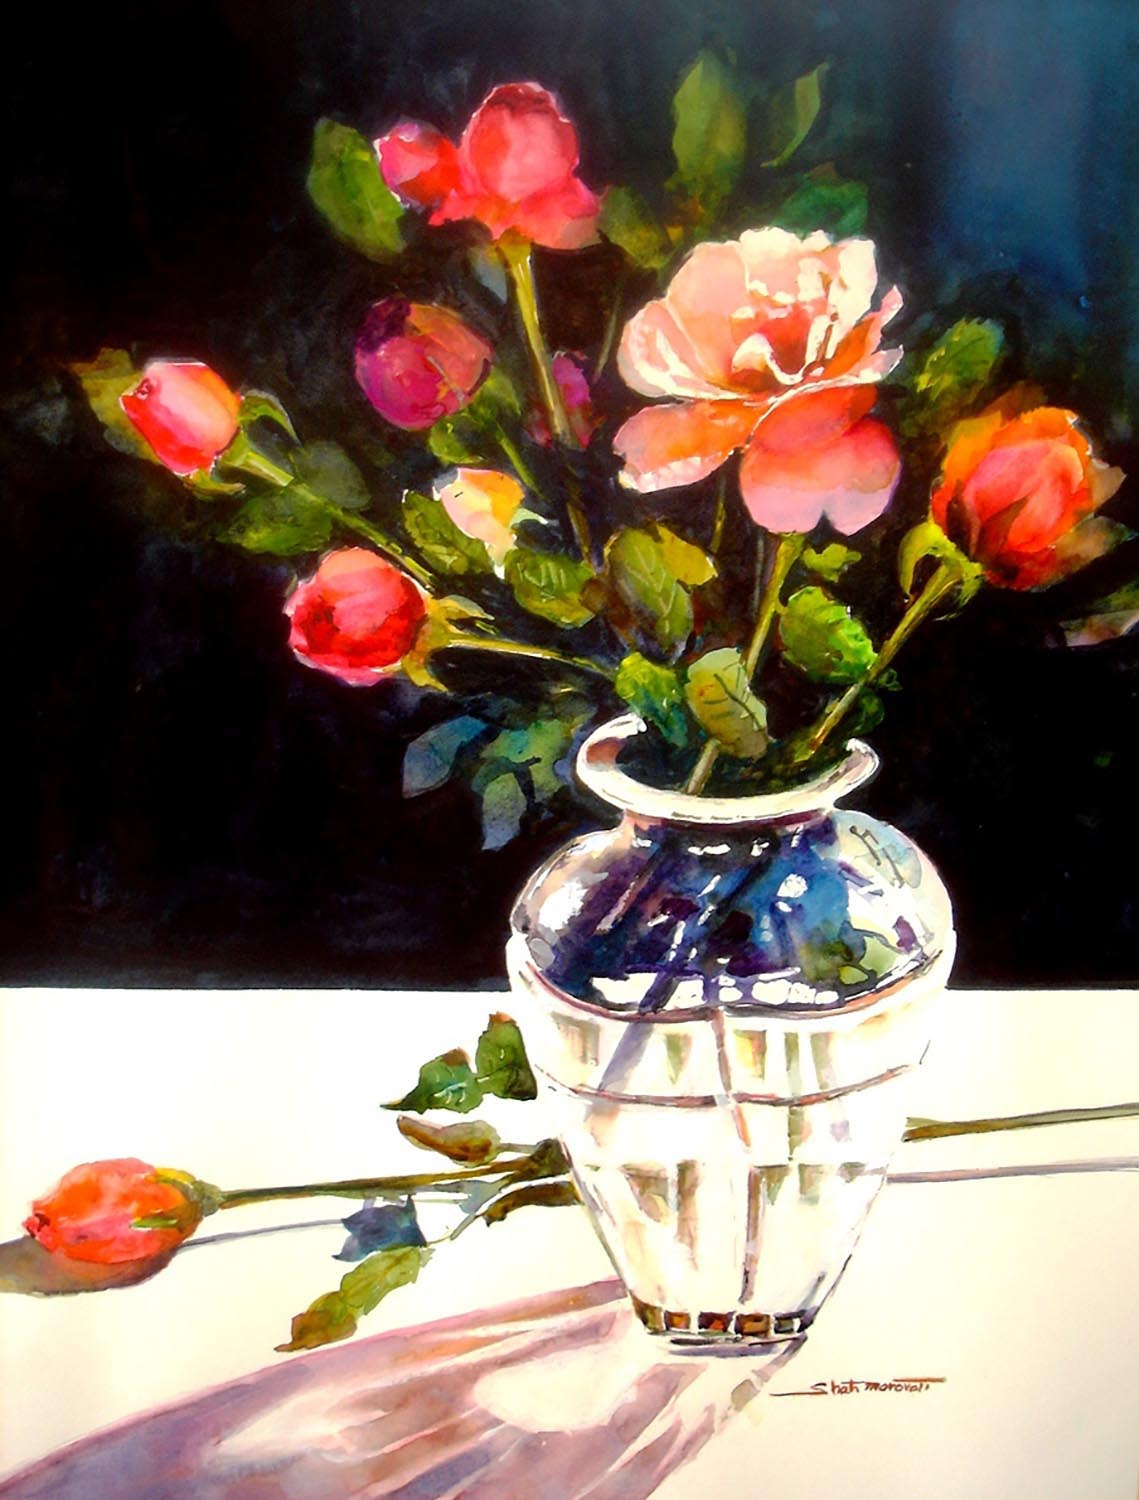 Crystal and Roses - Shah Morovati